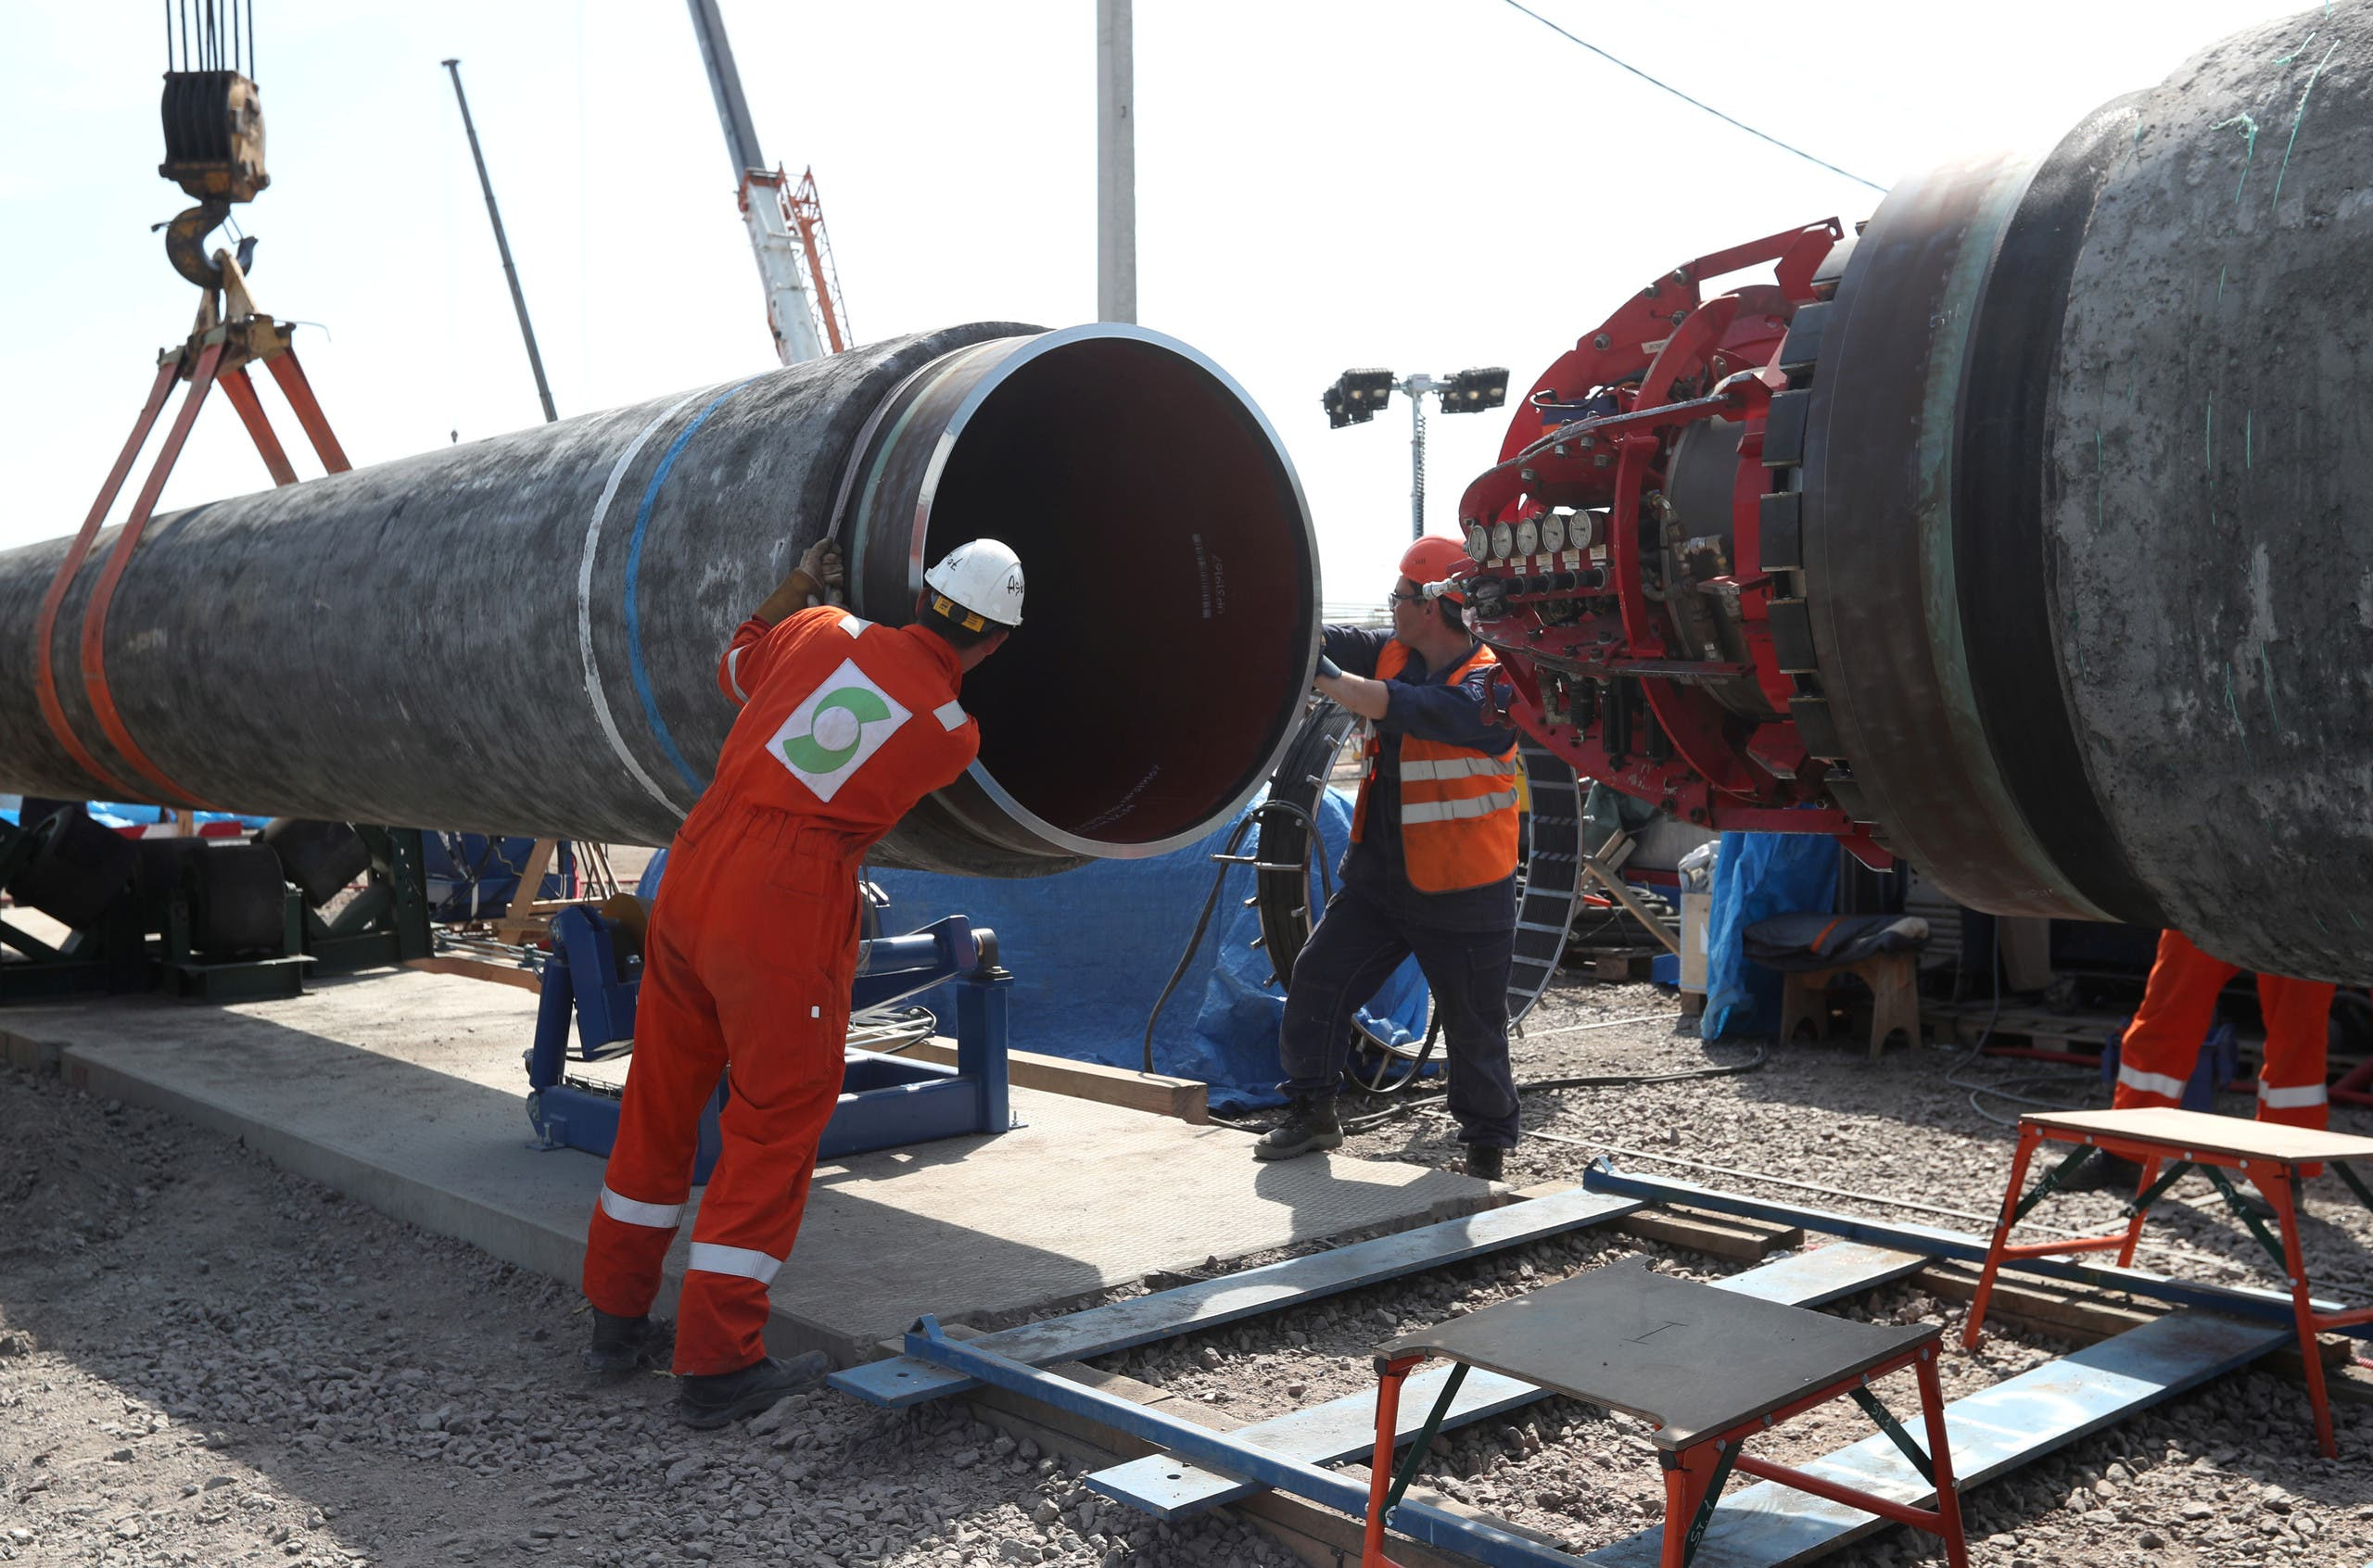 Workers are seen at the construction site of the Nord Stream 2 gas pipeline in Russia. (File photo: Reuters)